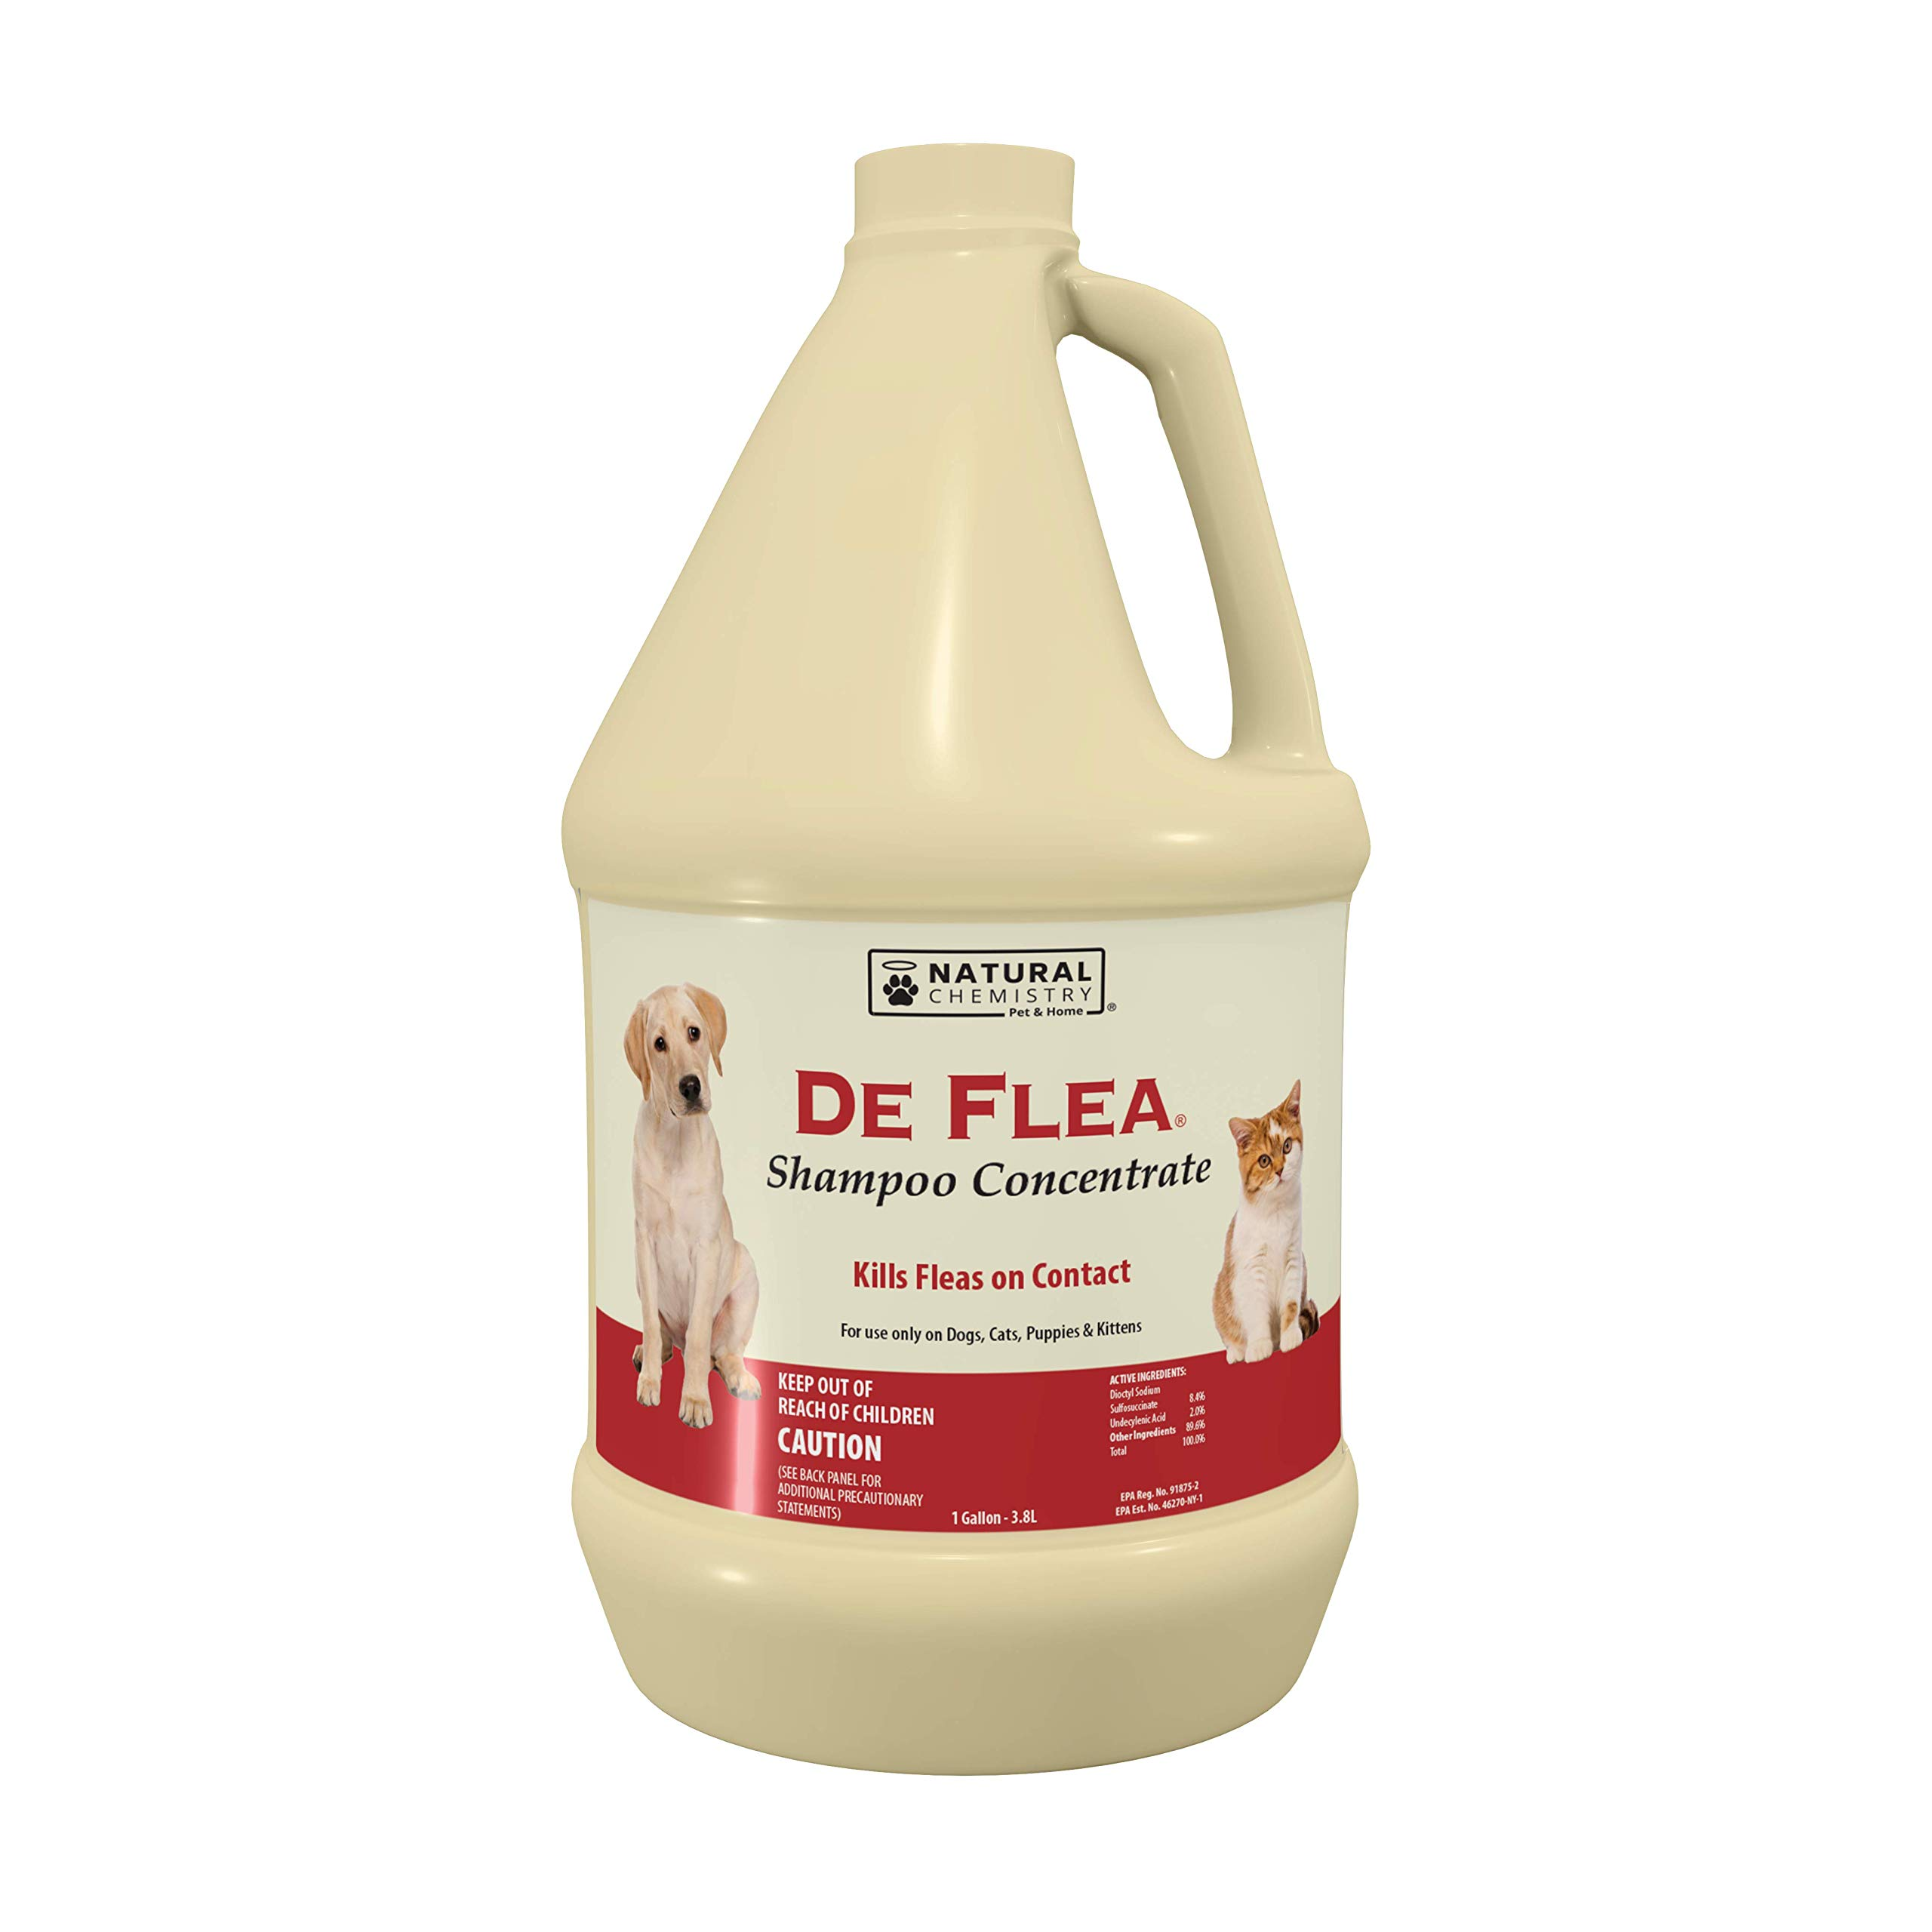 Natural Chemistry De Flea Concentrate Flea and Tick Shampoo, 1-Gallon by Natural Chemistry